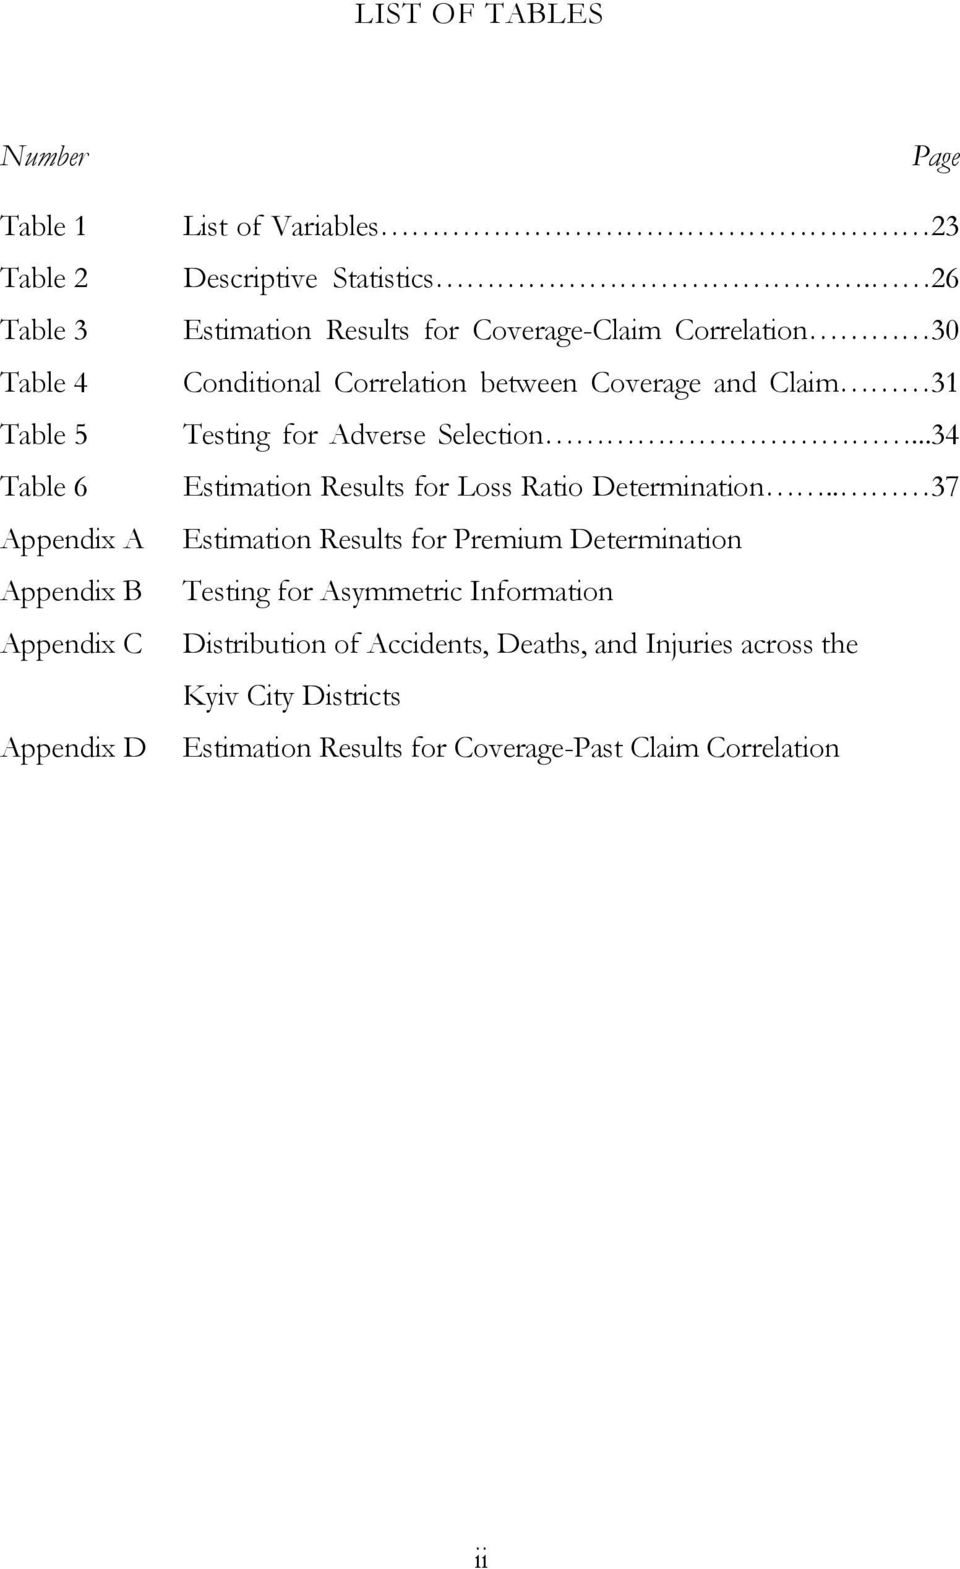 26 Estmaton Results for Coverage-Clam Correlaton 30 Condtonal Correlaton between Coverage and Clam 31 Testng for Adverse Selecton.